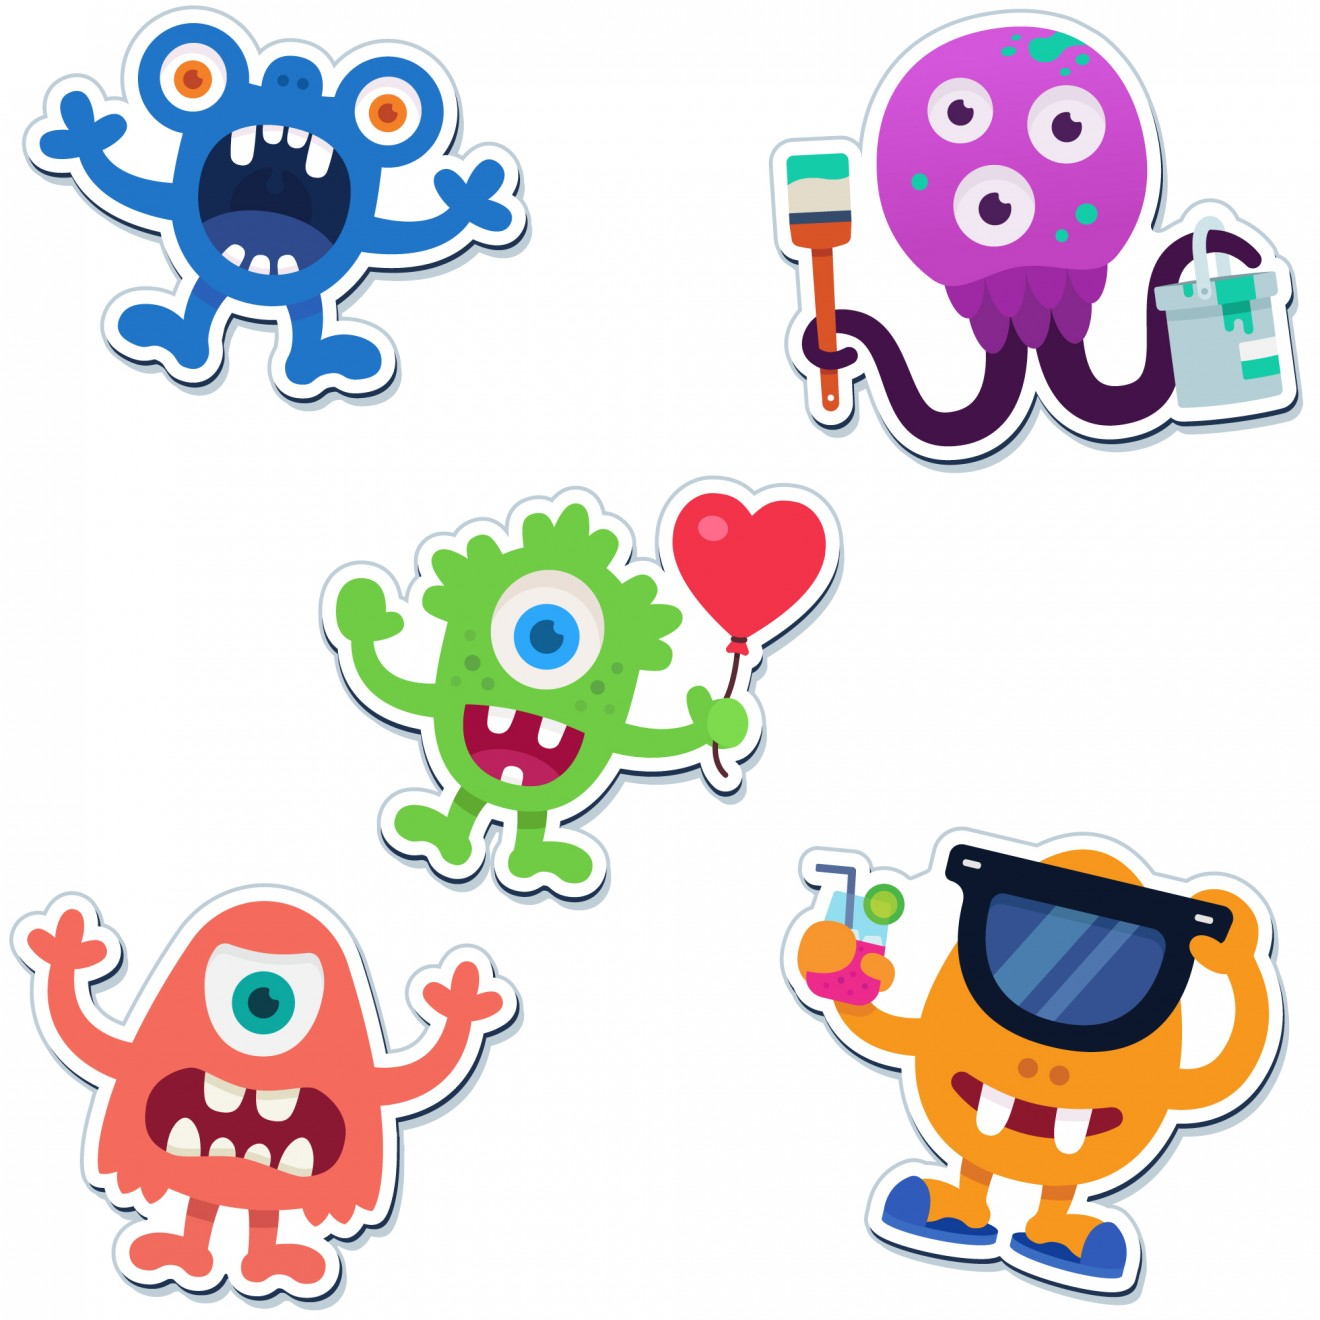 Image of the product The happy bunch, from the product category Magnets